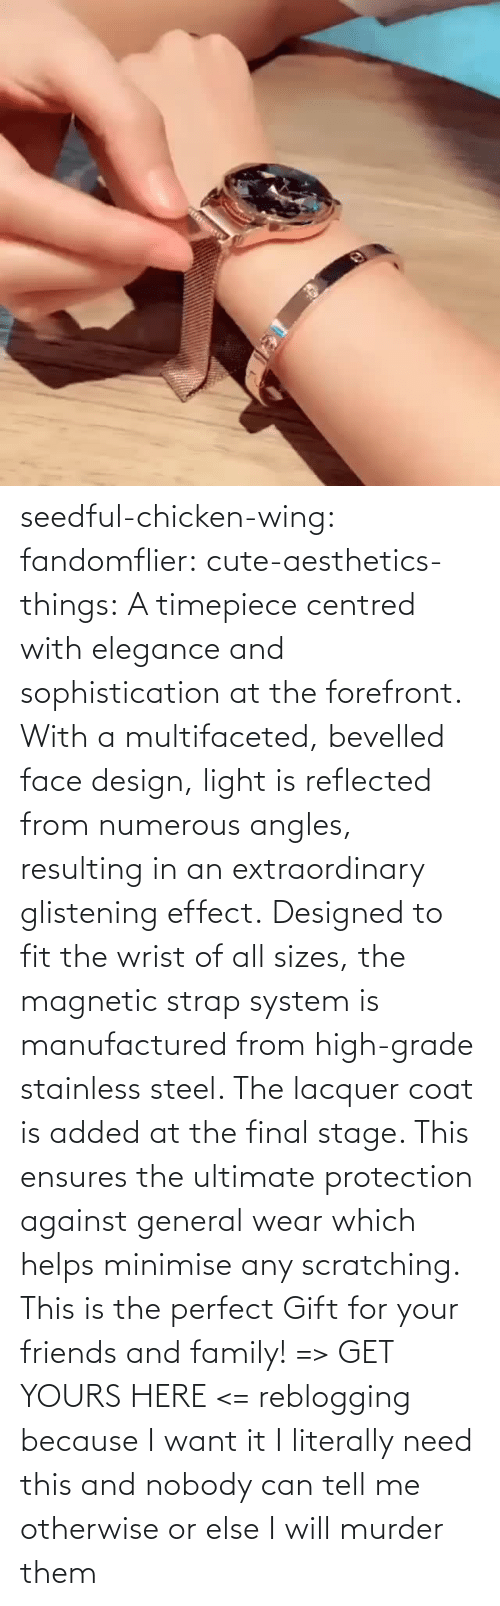 cute: seedful-chicken-wing: fandomflier:  cute-aesthetics-things:   A timepiece centred with elegance and sophistication at the forefront. With a multifaceted, bevelled face design, light is reflected from numerous angles, resulting in an extraordinary glistening effect. Designed to fit the wrist of all sizes, the magnetic strap system is manufactured from high-grade stainless steel. The lacquer coat is added at the final stage. This ensures the ultimate protection against general wear which helps minimise any scratching. This is the perfect Gift for your friends and family! => GET YOURS HERE <=   reblogging because I want it  I literally need this and nobody can tell me otherwise or else I will murder them